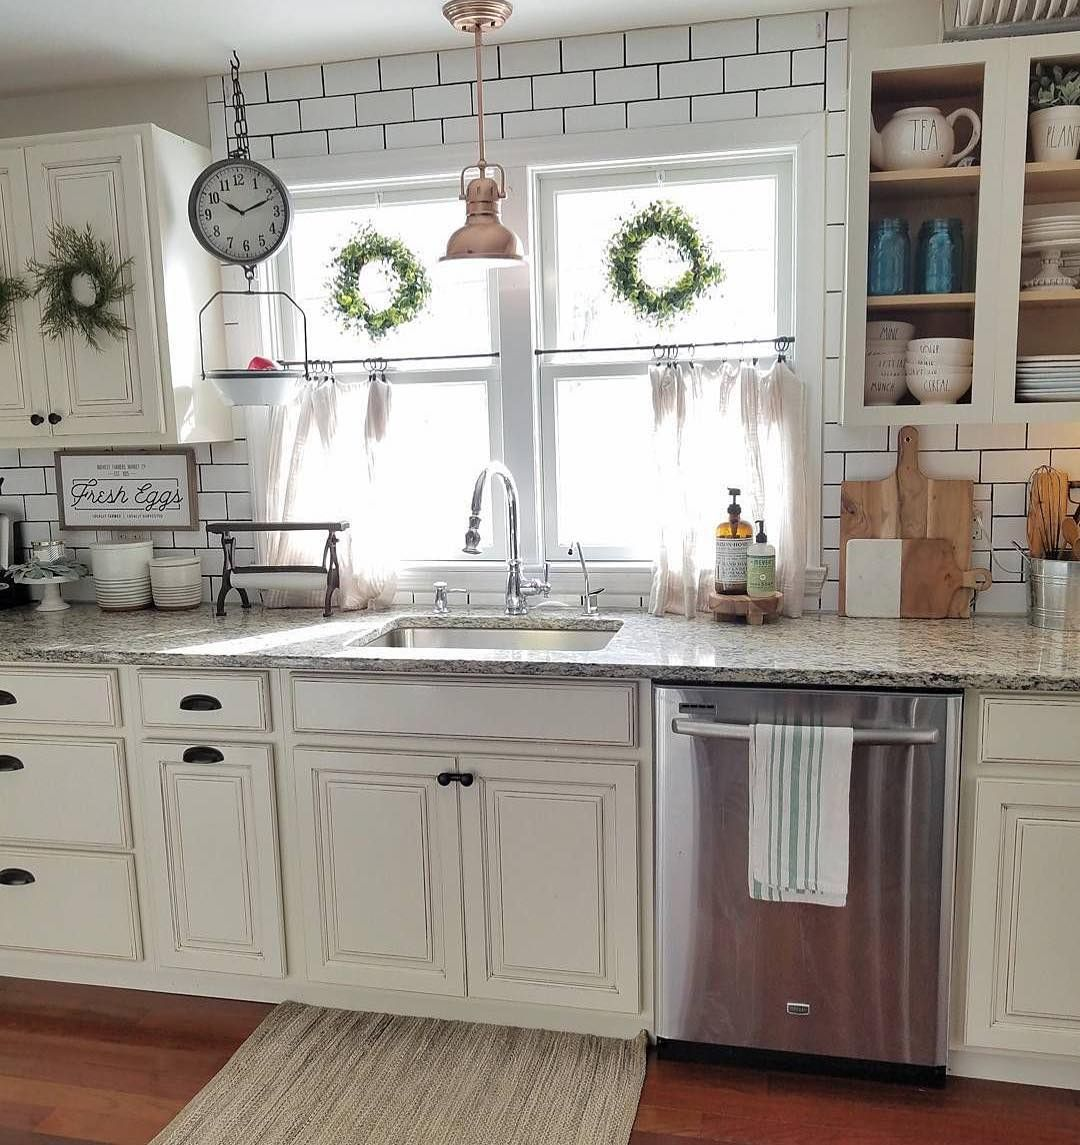 288 6k Followers 320 Following 4 478 Posts See Instagram Photos And Videos From Antique Farmh Farmhouse Kitchen Decor Kitchen Decor Apartment Kitchen Decor